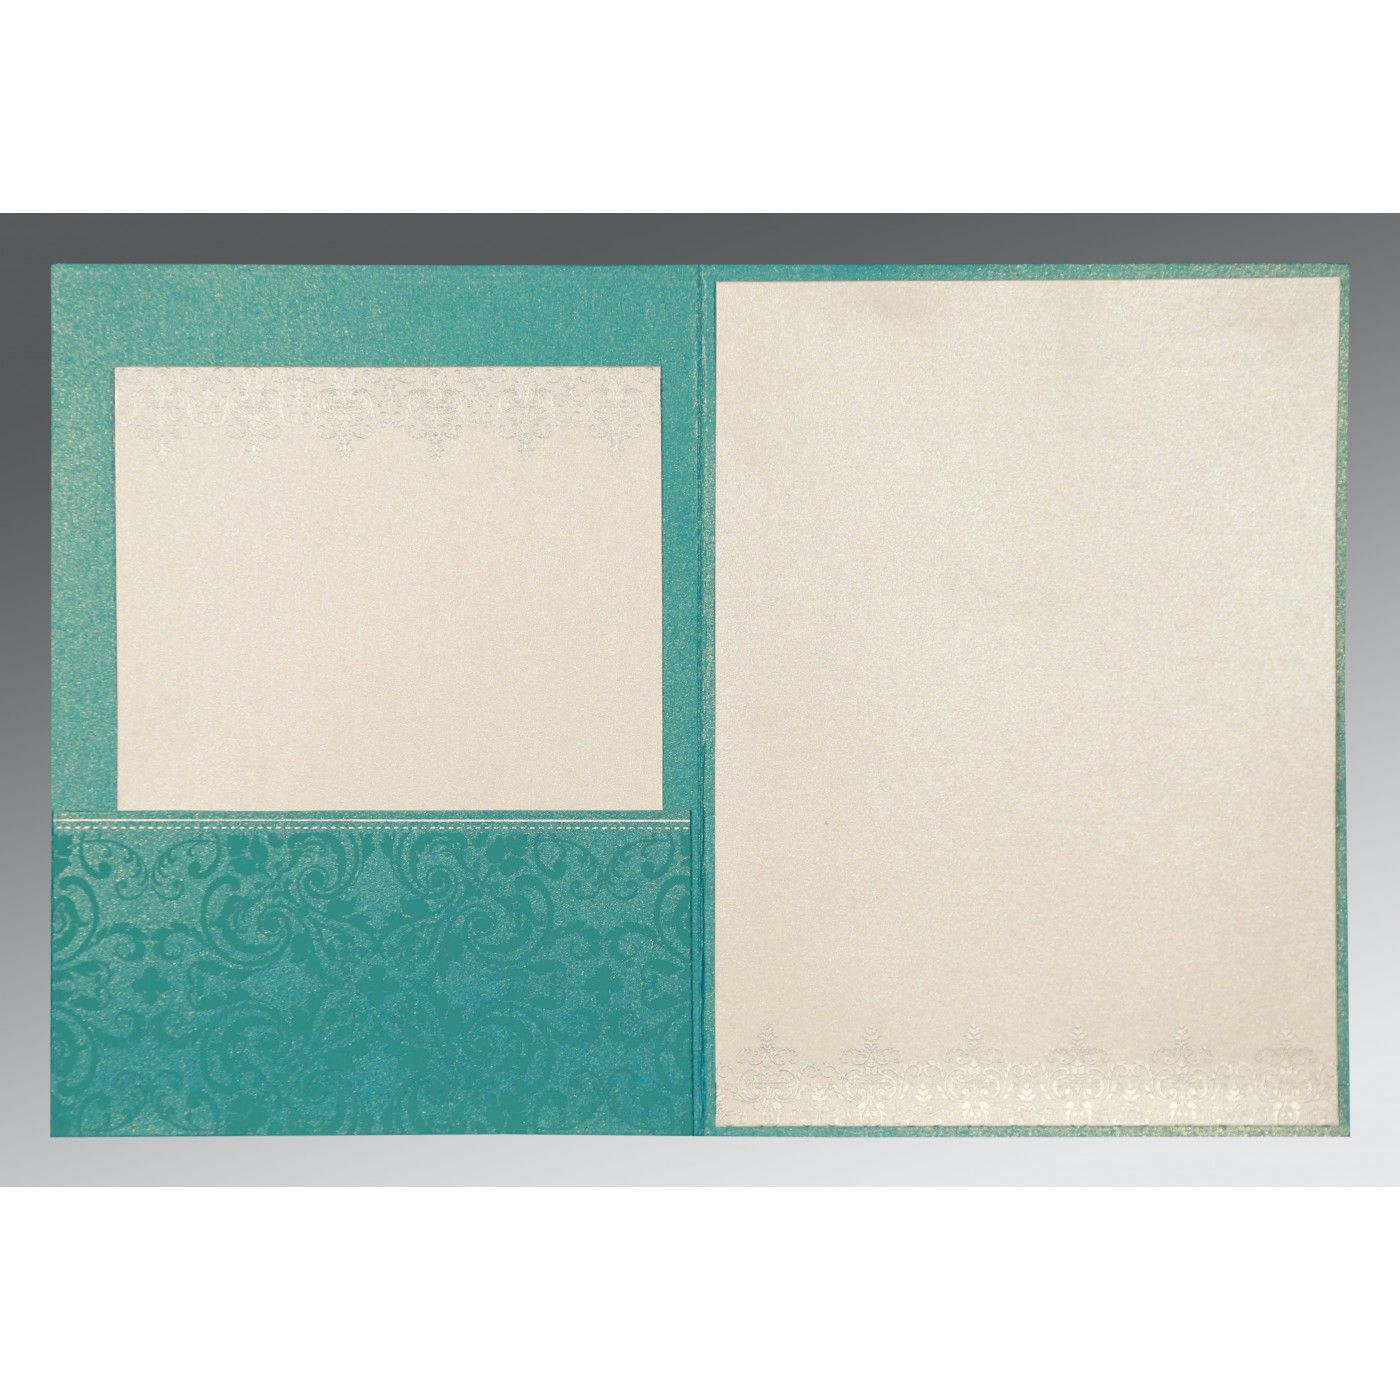 TEAL BLUE SHIMMERY SCREEN PRINTED WEDDING CARD : CG-8244C - IndianWeddingCards